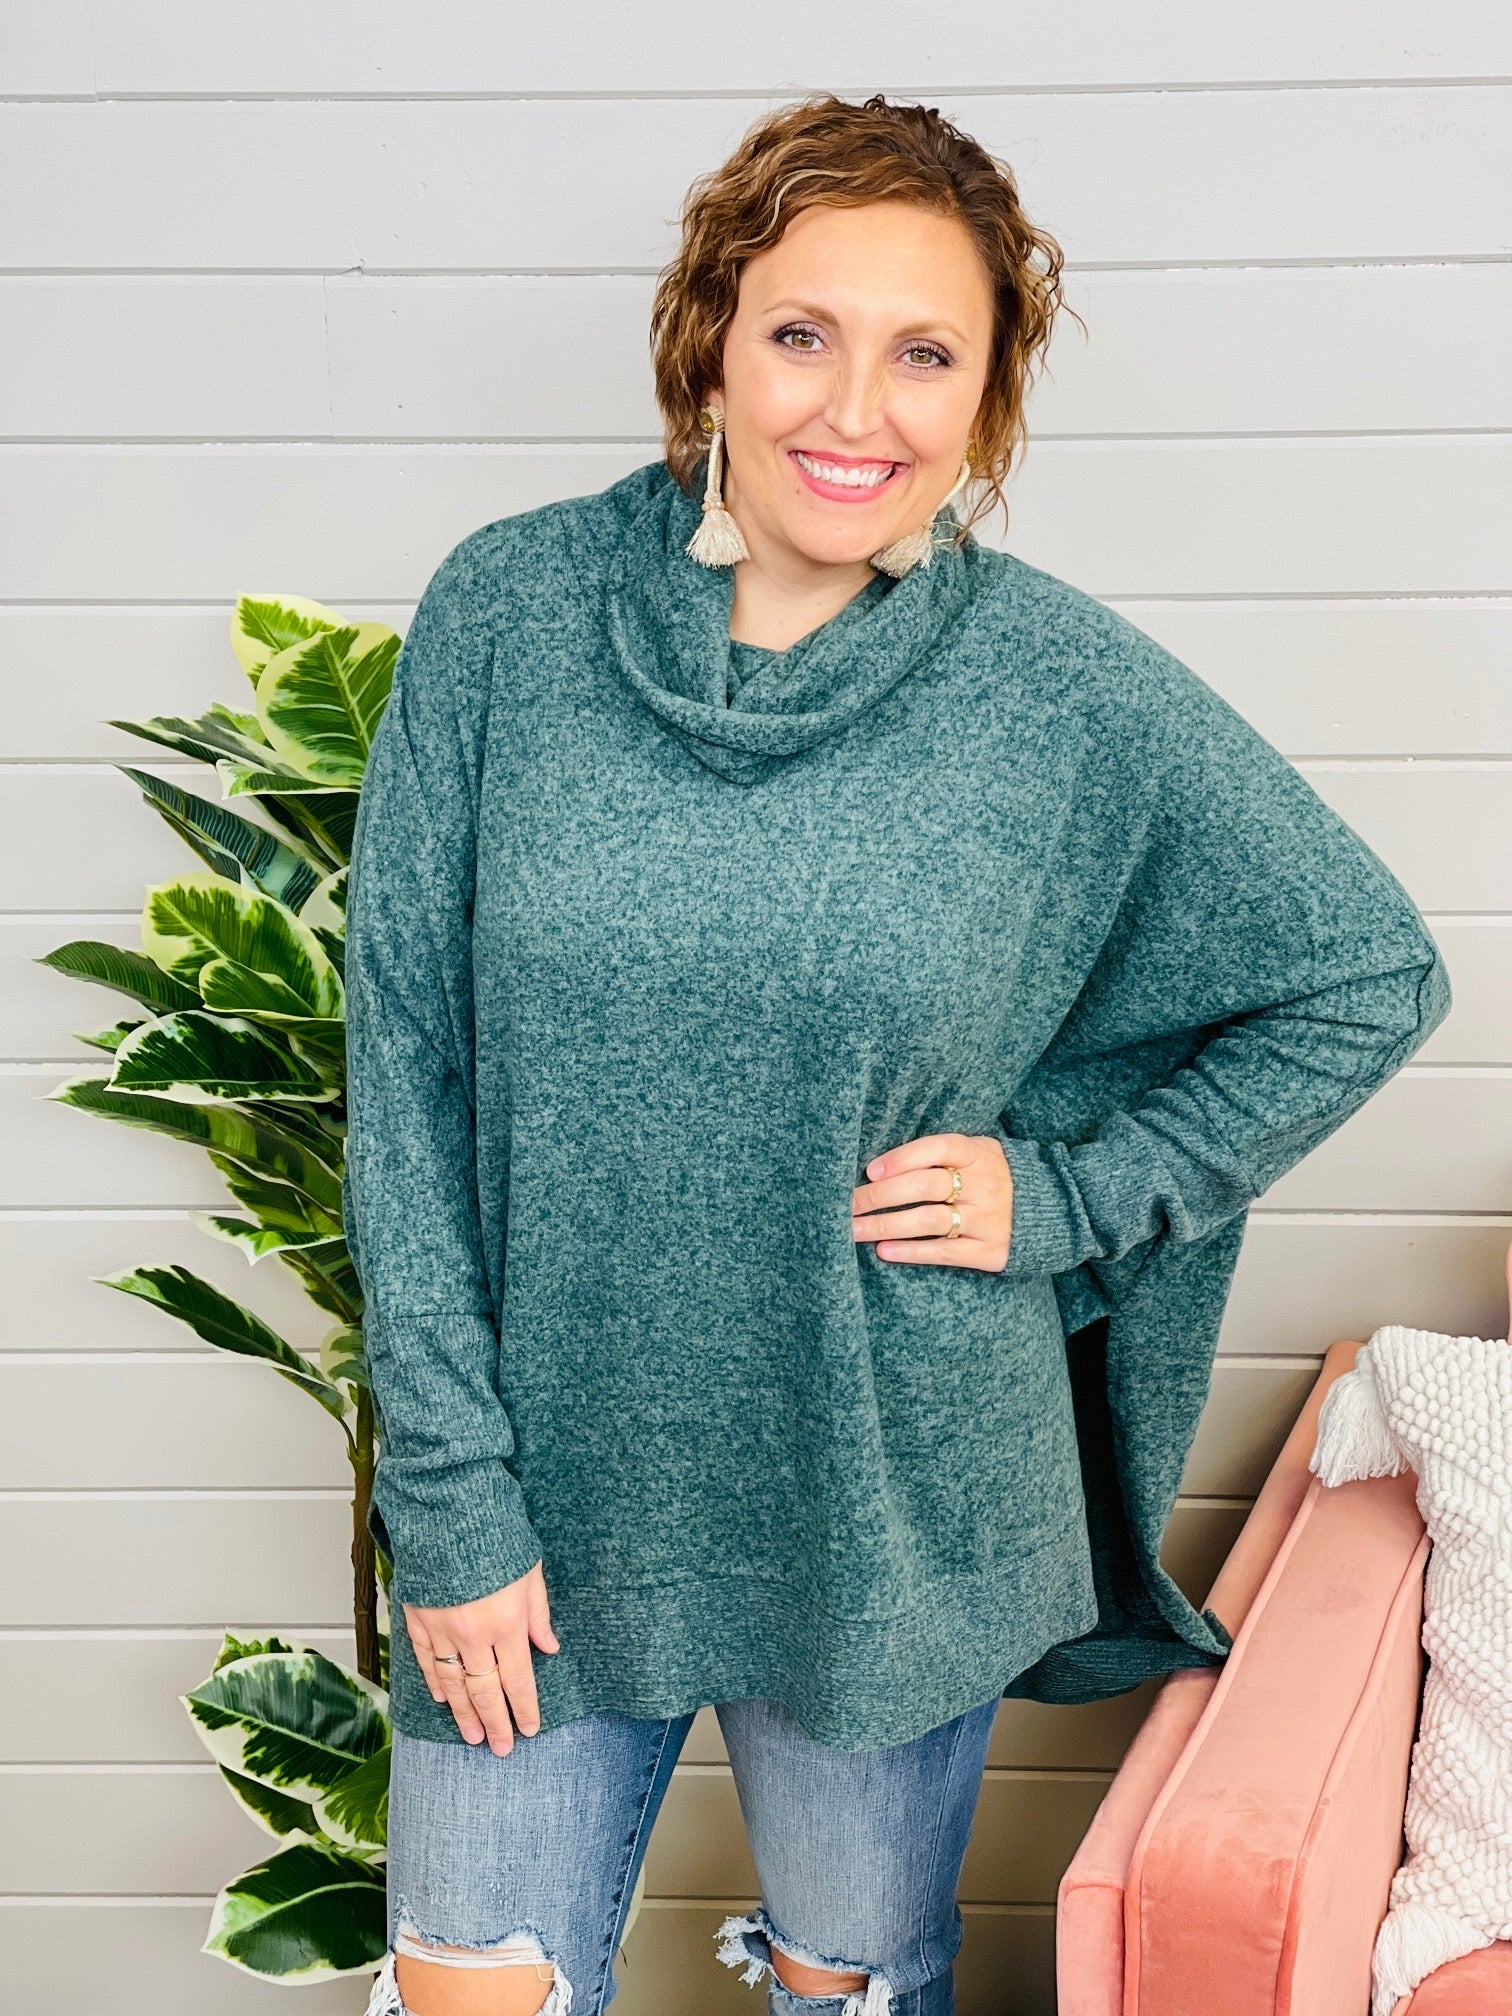 DOORBUSTER PLUS/REG Easy Choices Sweater- 7 Colors!